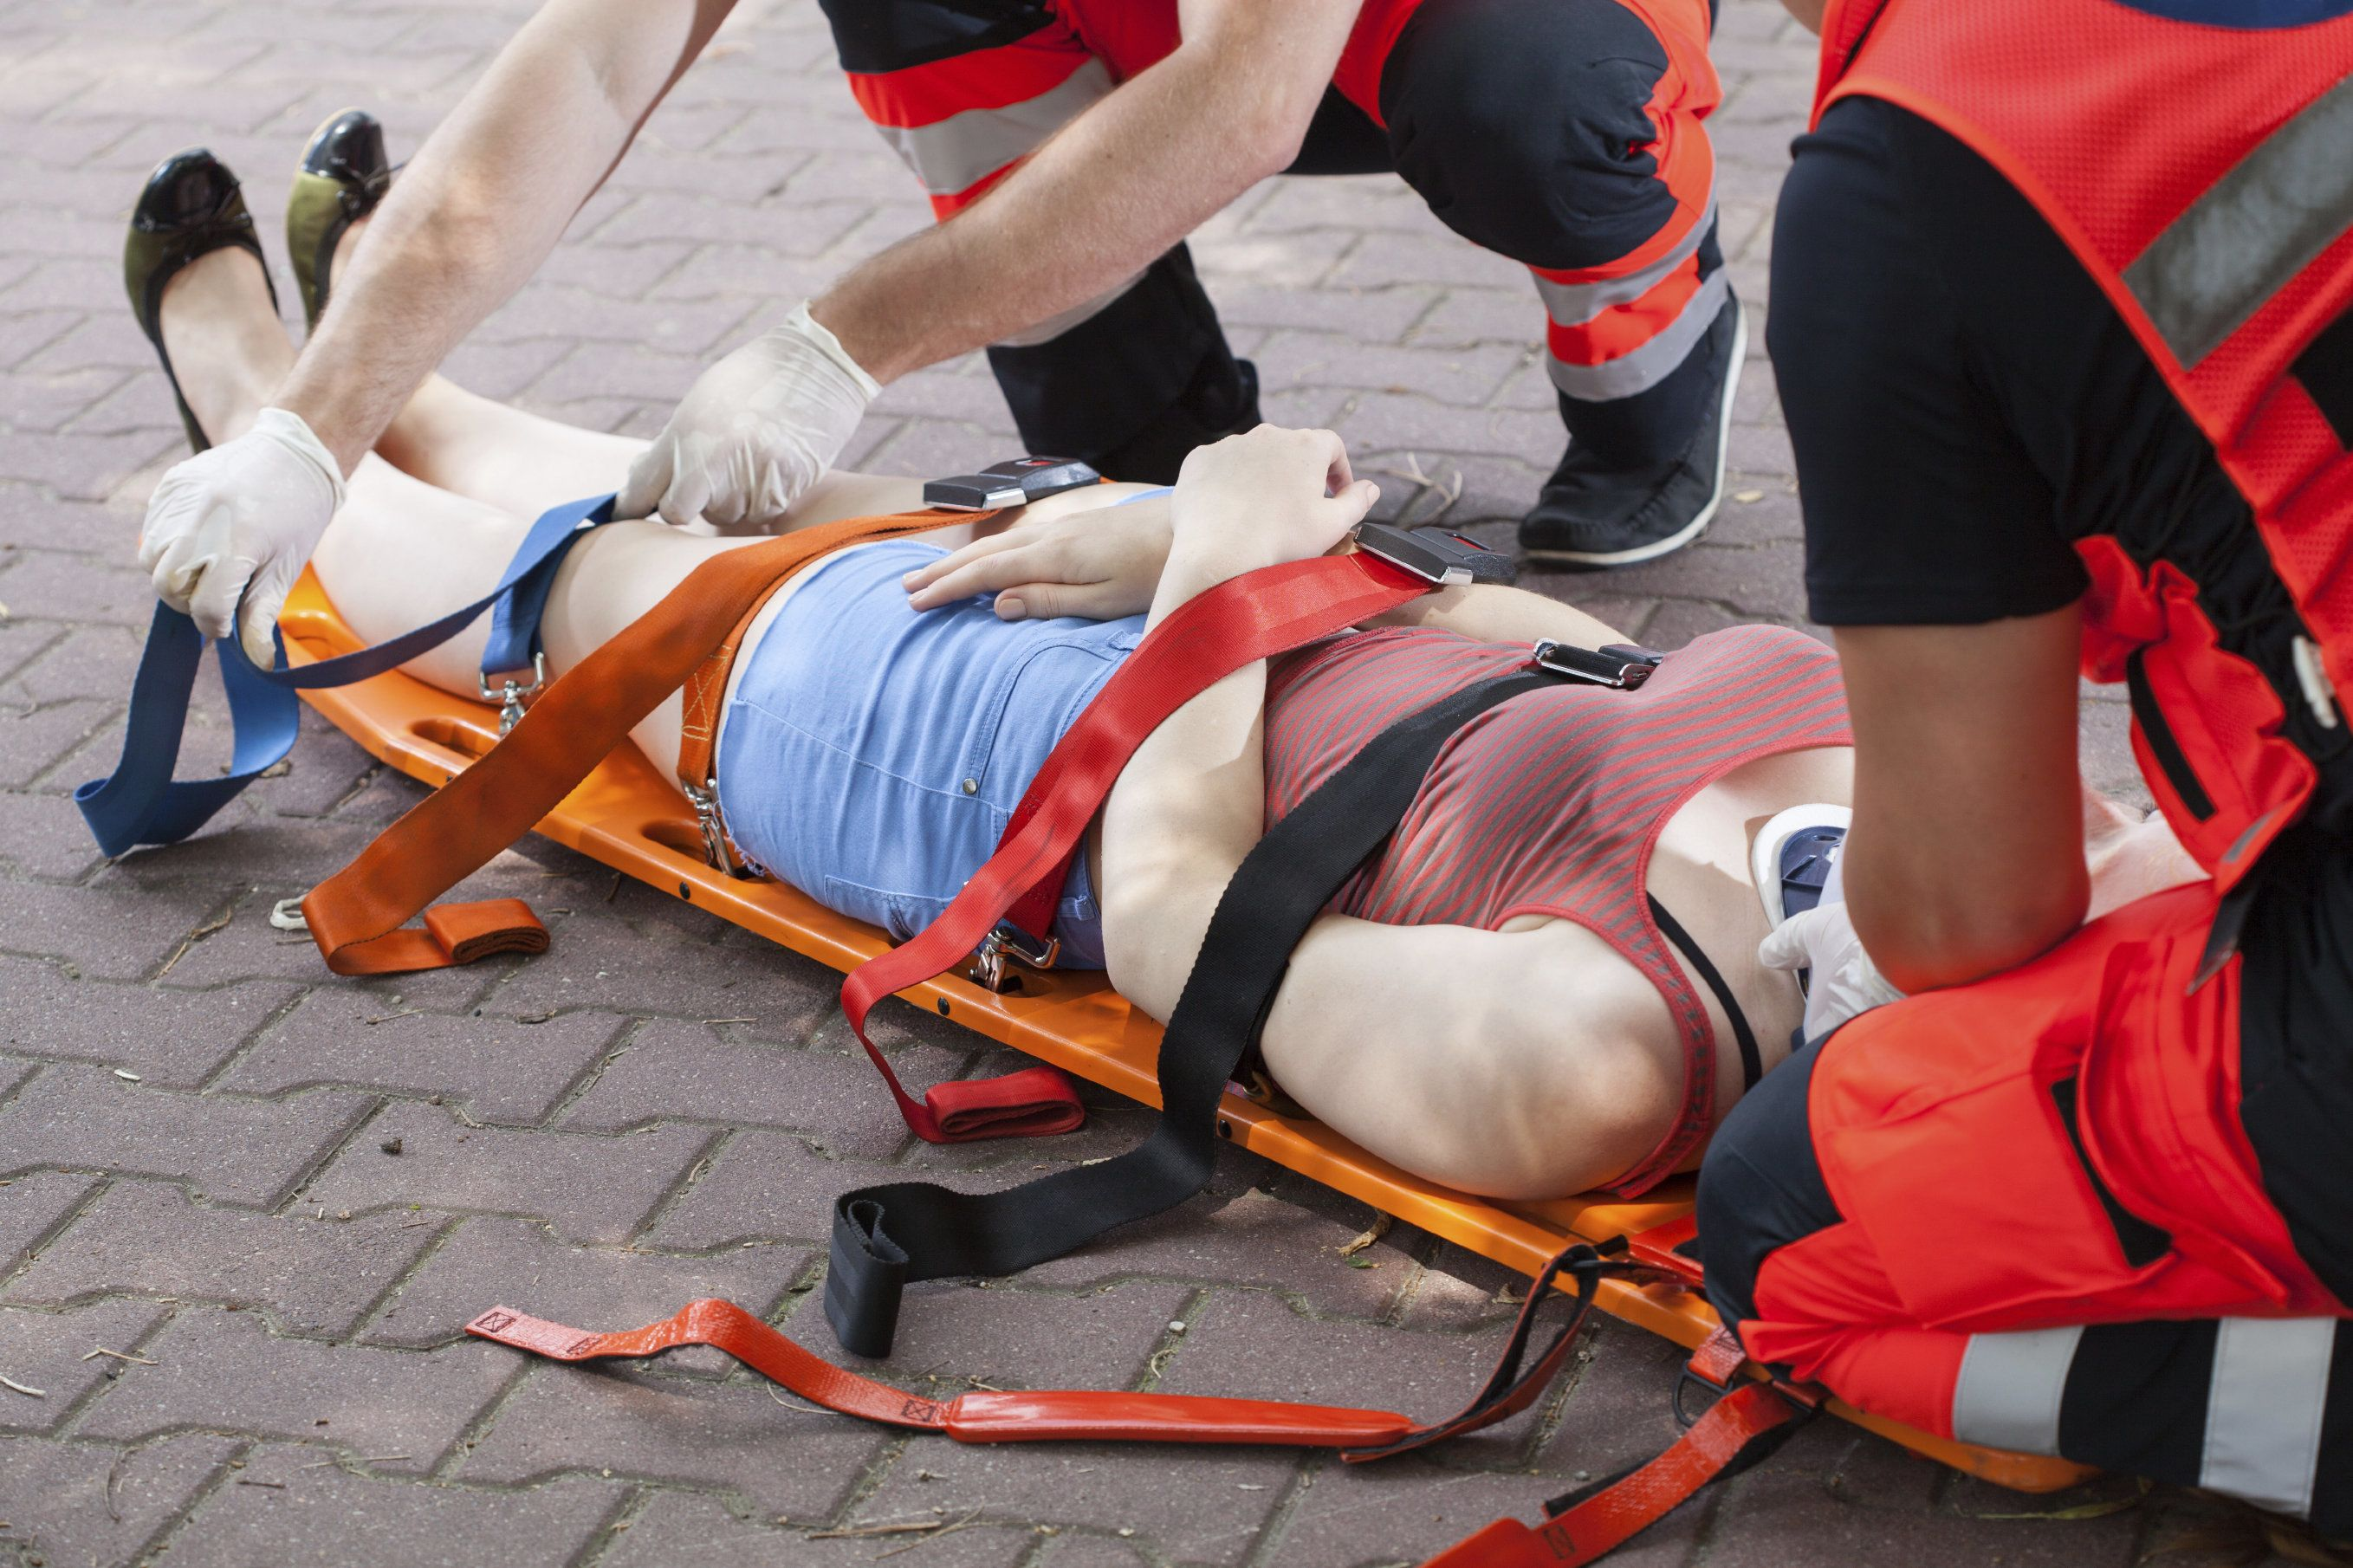 A spinal cord injury victim being placed on a stretcher